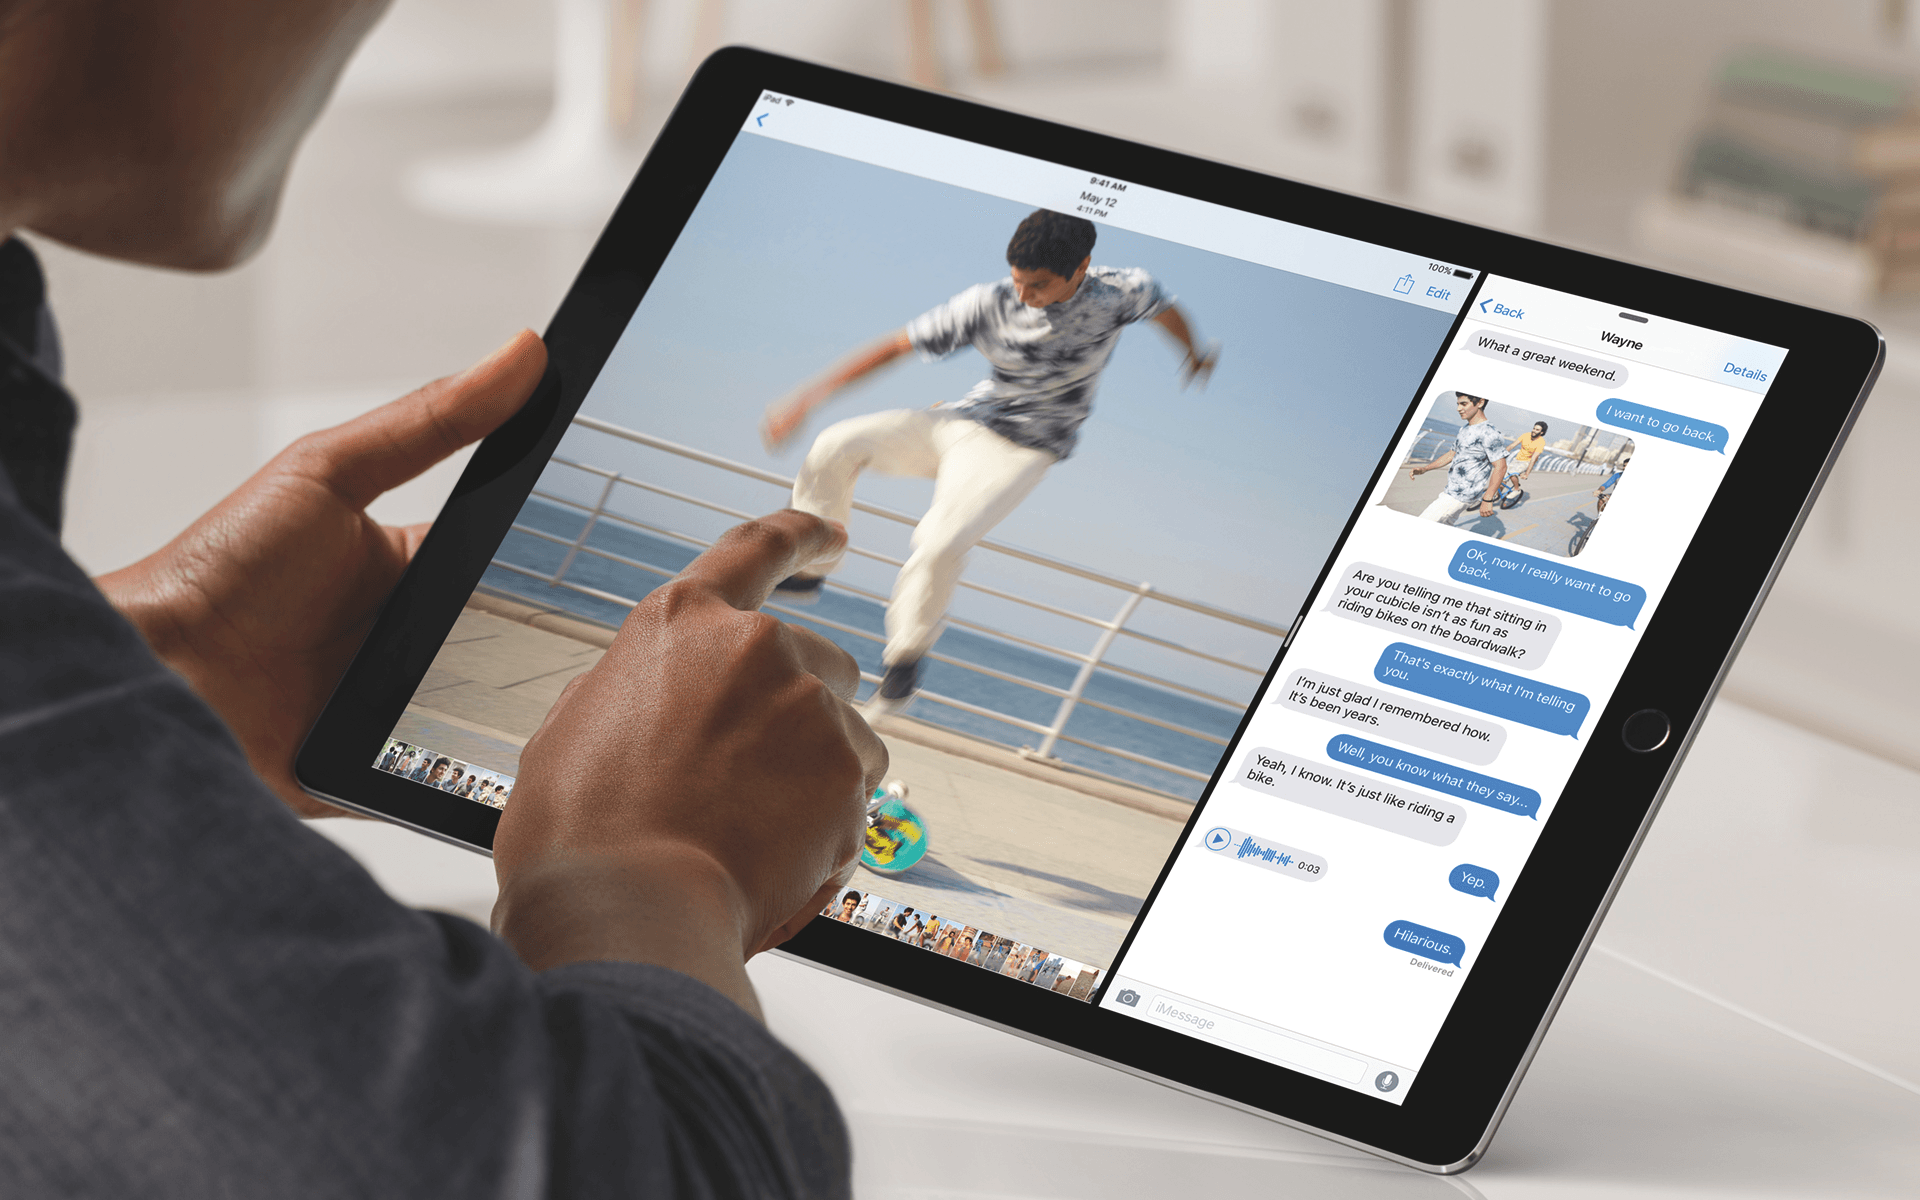 iPad Pro: Our Complete Overview